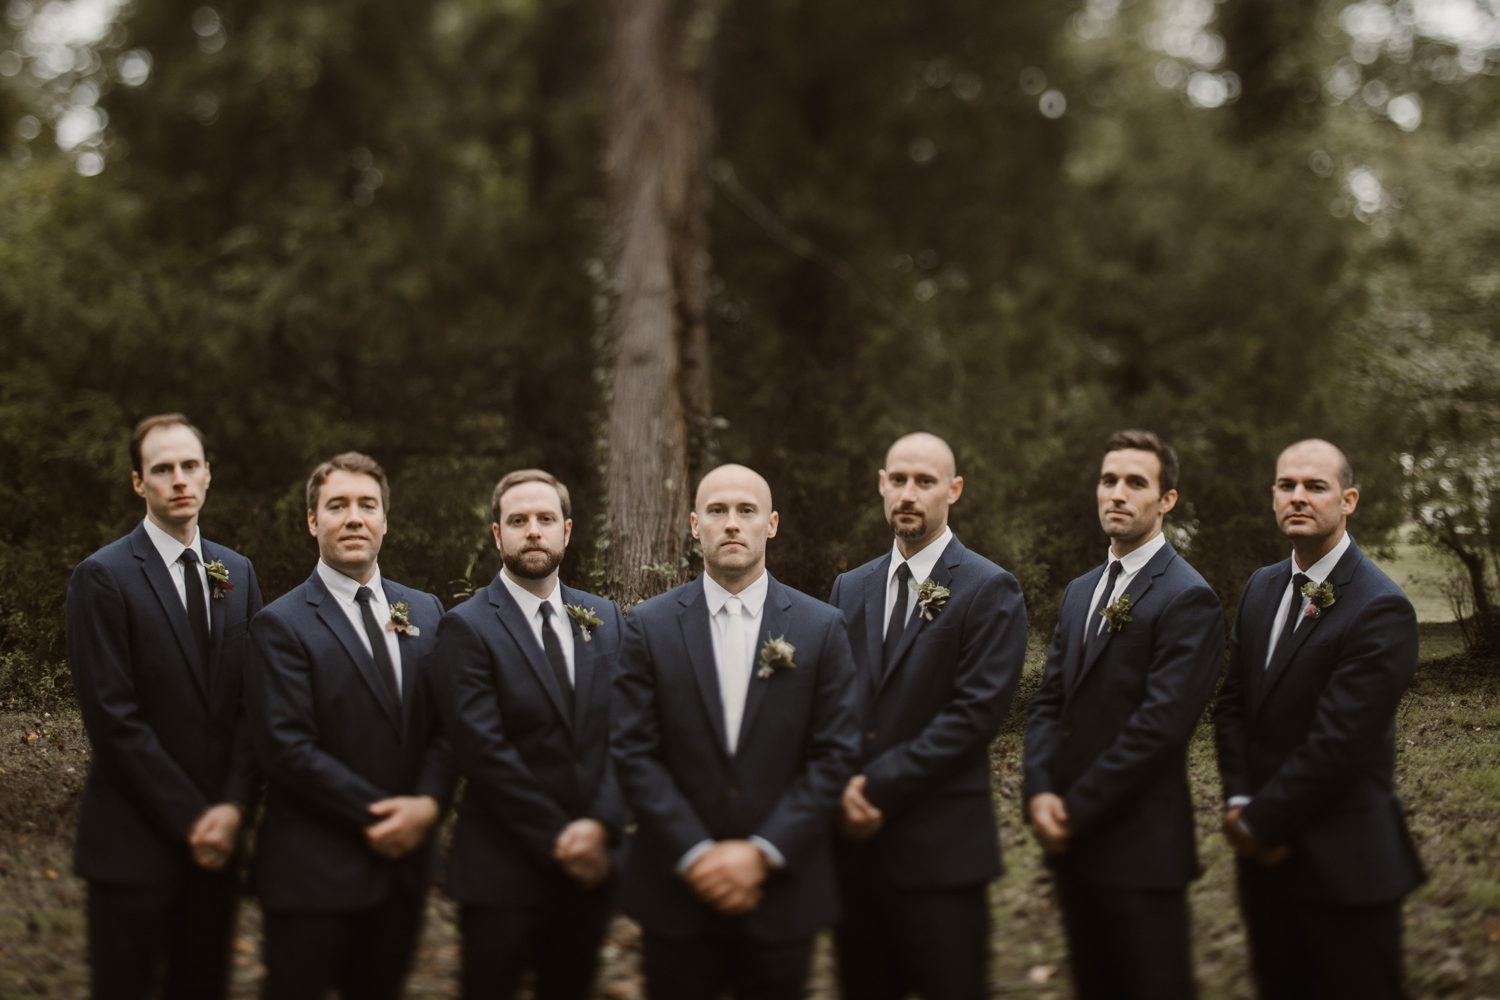 Baltimore wedding photographer outdoor Maryland wedding ceremony | forest earthy Annapolis wedding | outdoors groomsmen portraits